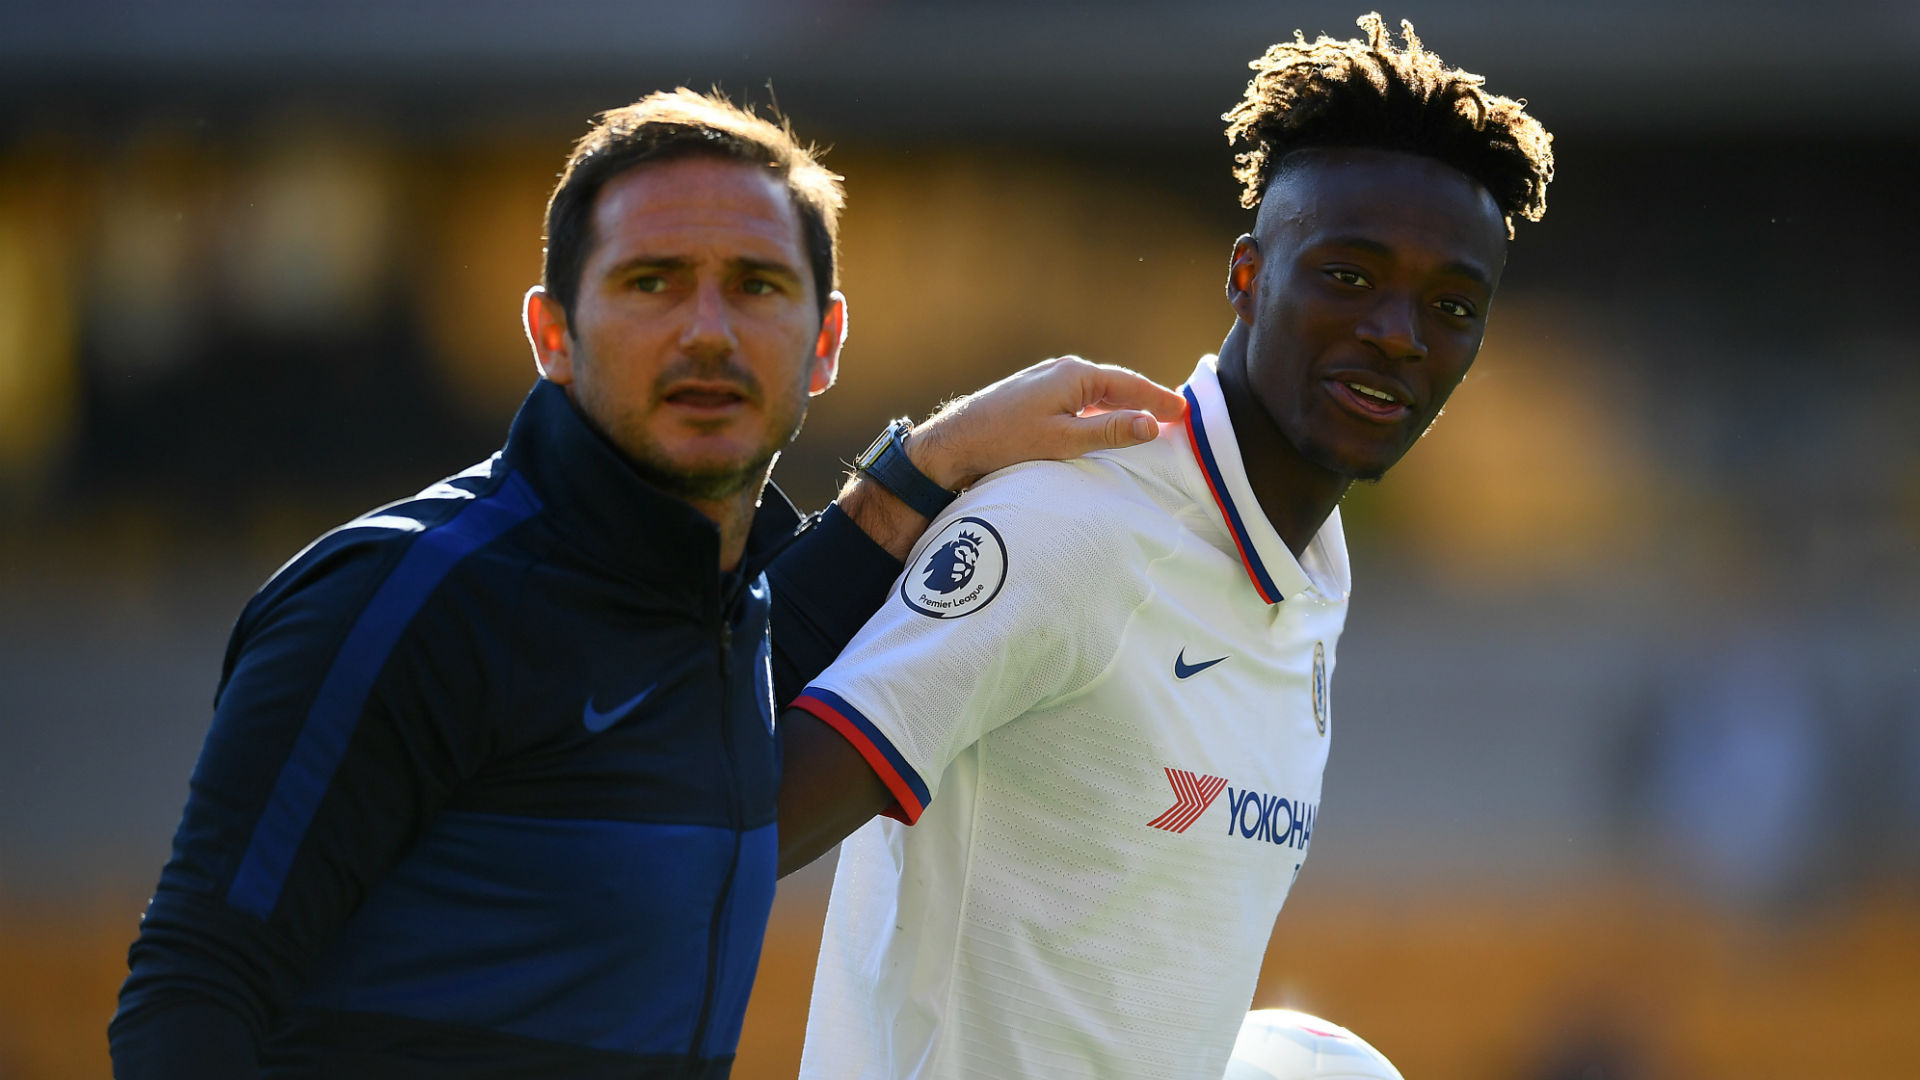 Lampard backs Abraham for England call but not setting expectations